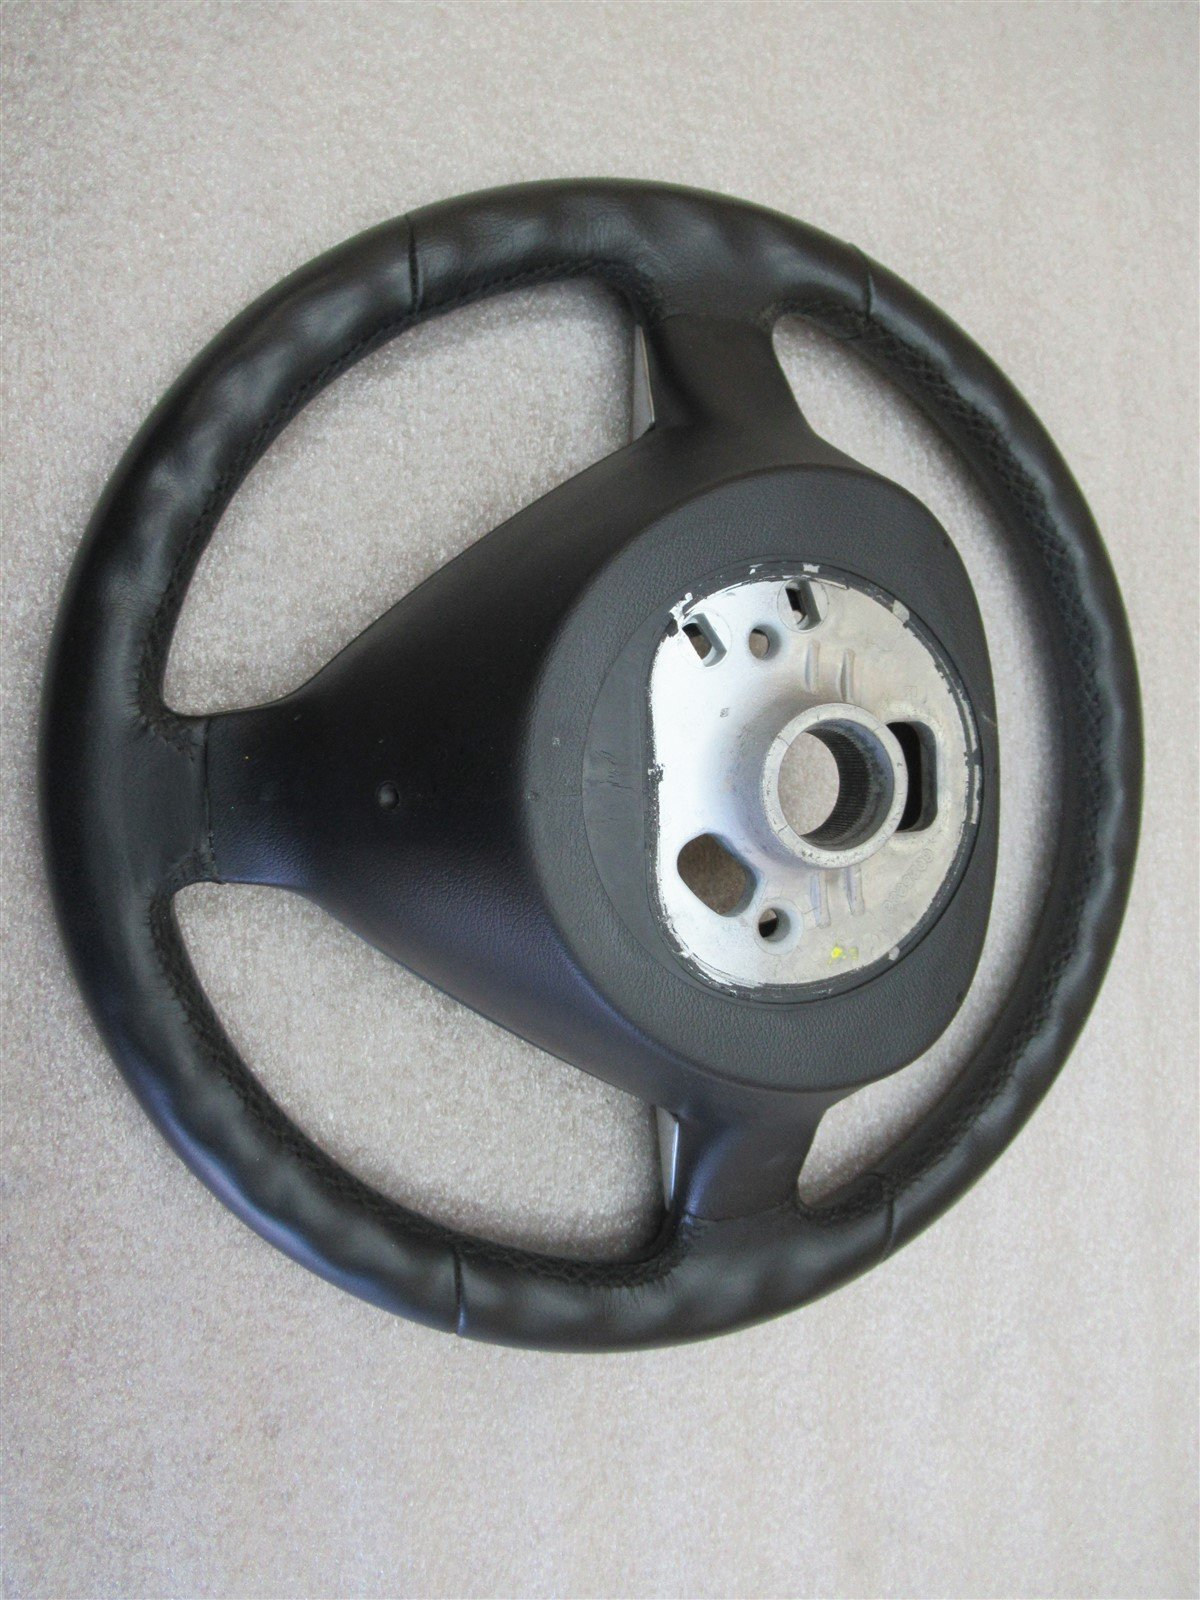 06 Cayman S RWD Porsche 987 Leather 3 SPOKE STEERING WHEEL 99734783700 81,670